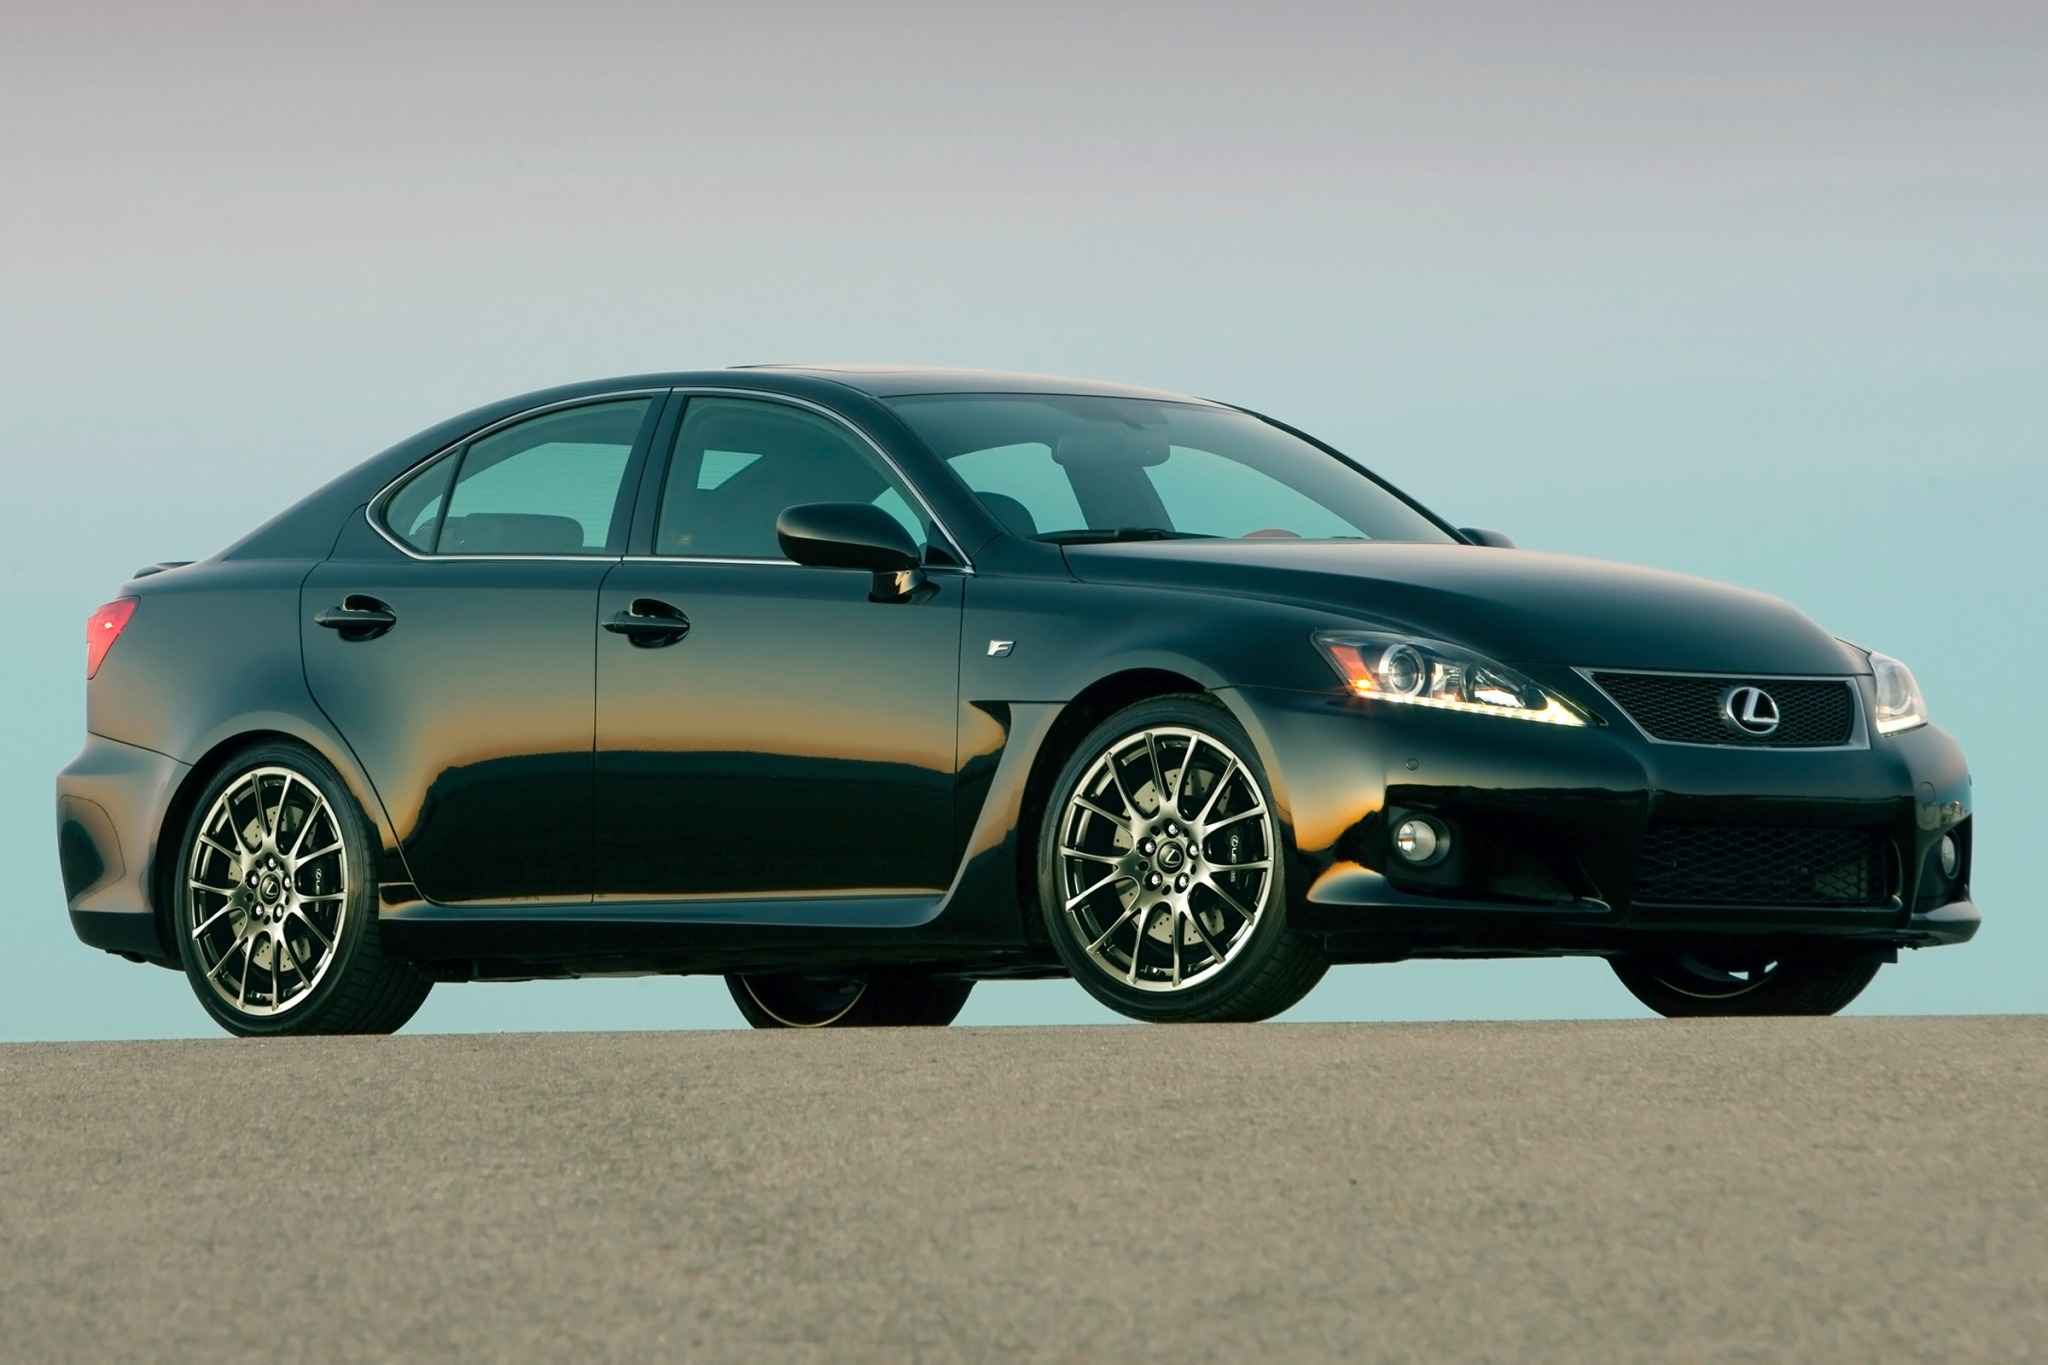 2014 Lexus IS F Information and photos ZombieDrive